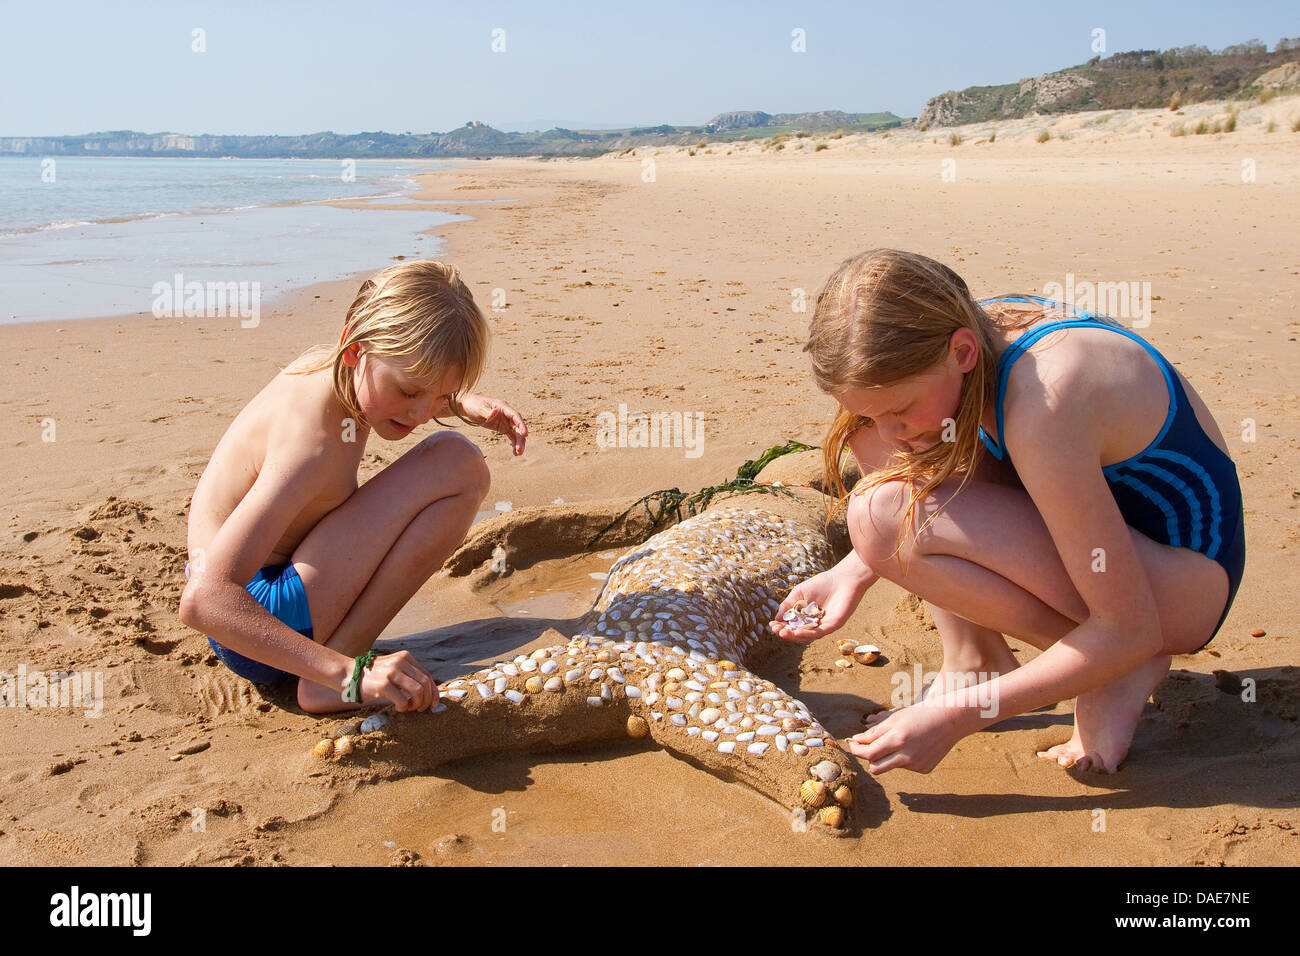 two children creating a mermaid at the mediterrian beach of Sand, seashells, little stones and algae, Italy, Sicilia - Stock Image